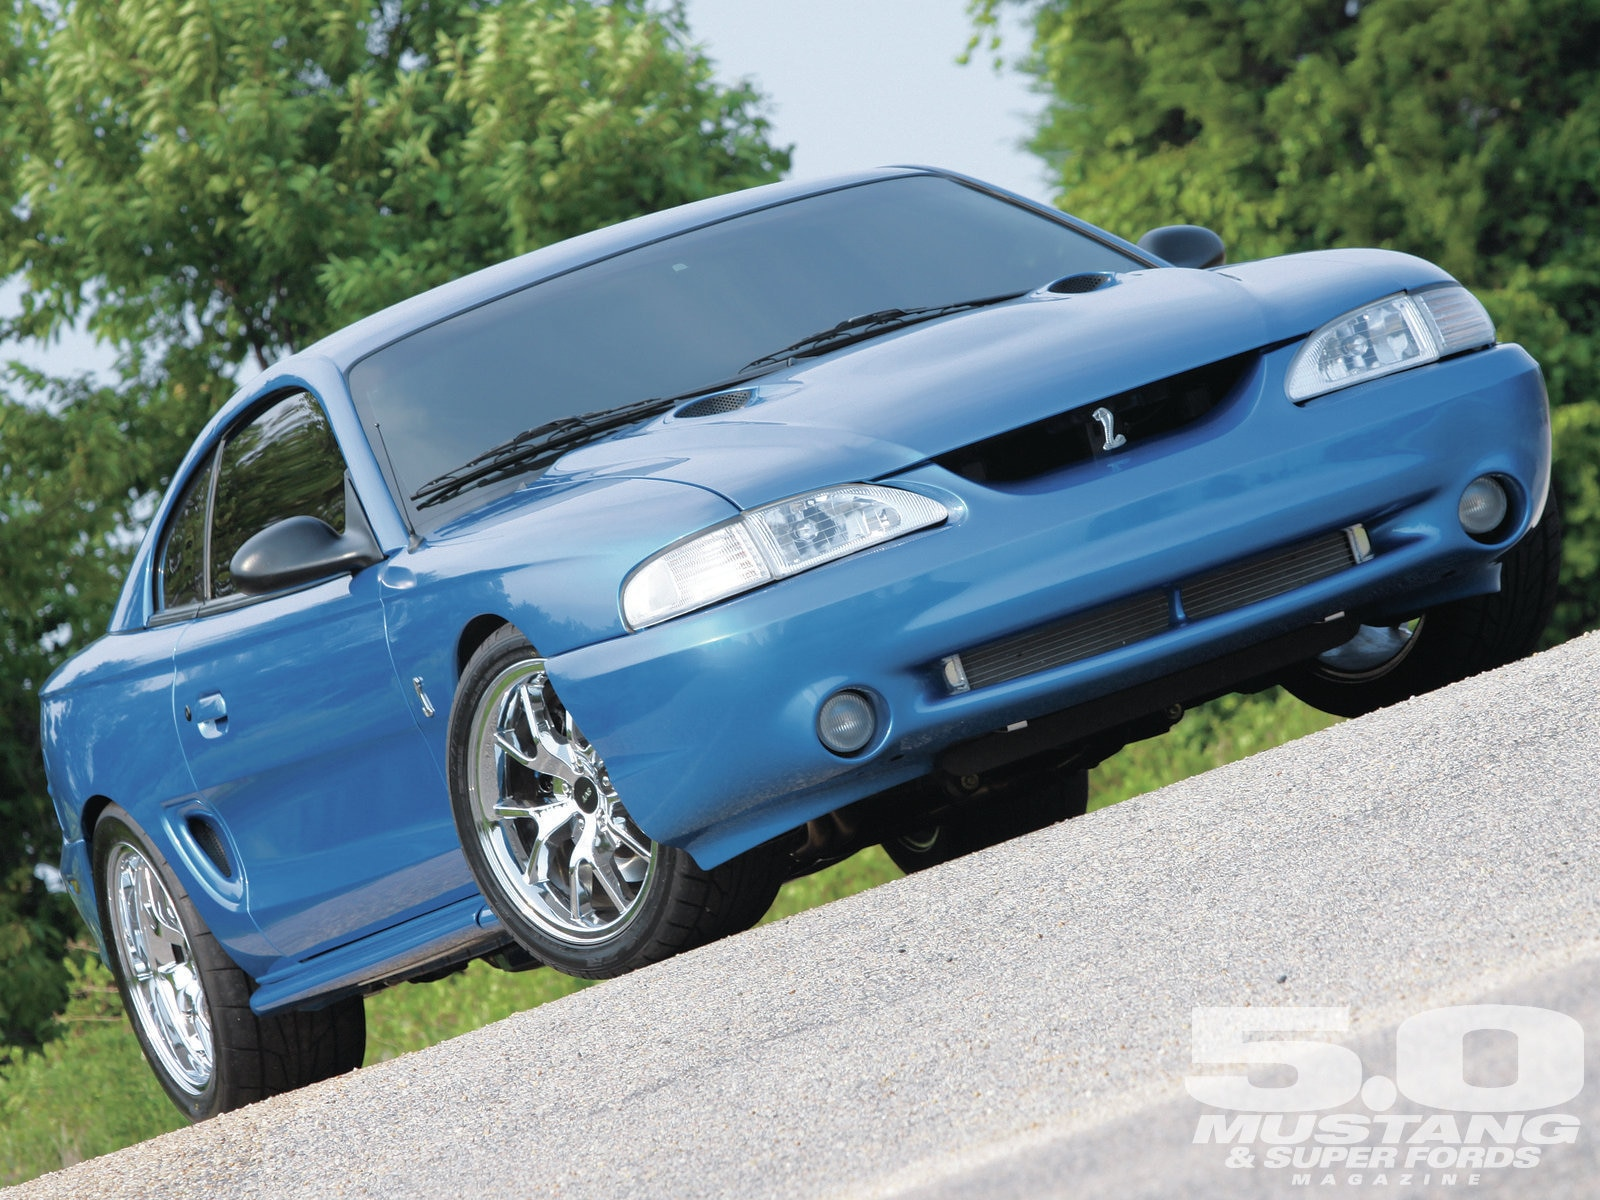 M5lp 1207 000 1998 Cobra Higher Power